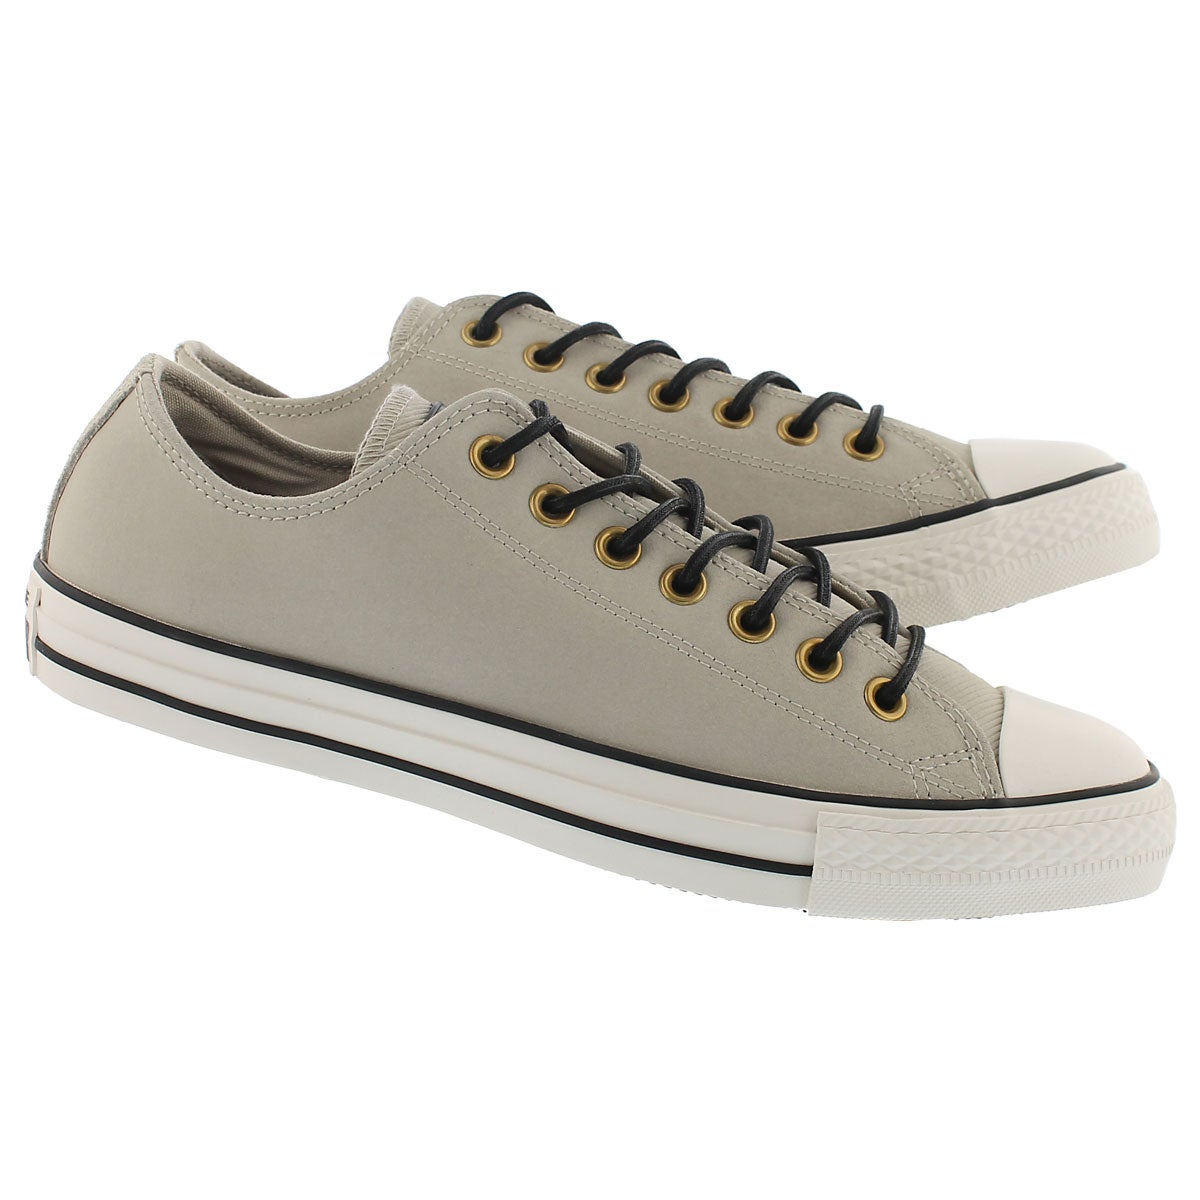 Mns CT A/S Leather Ox taupe sneaker